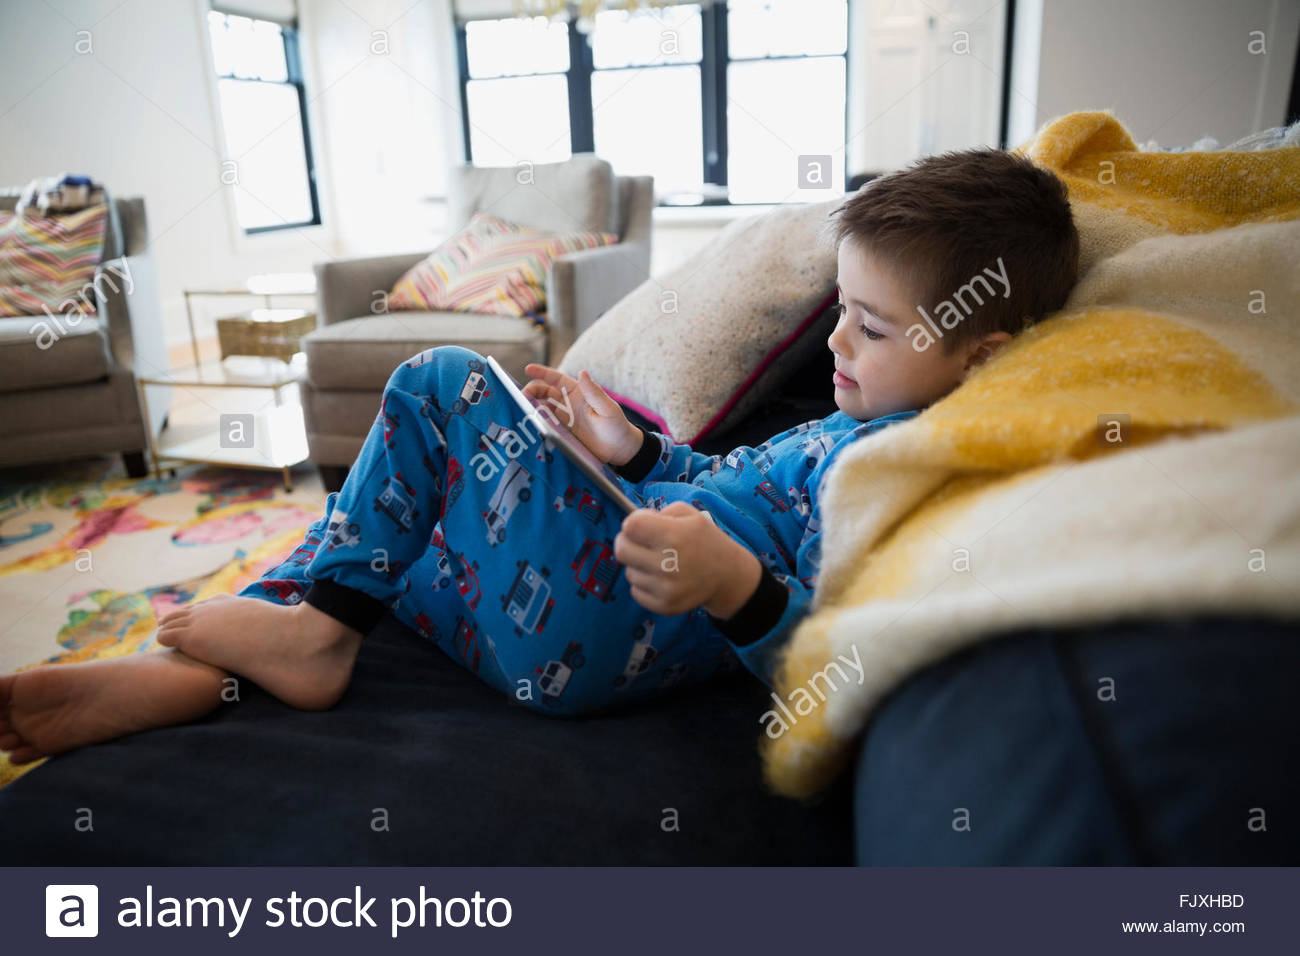 Boy in pajamas using digital tablet on sofa - Stock Image